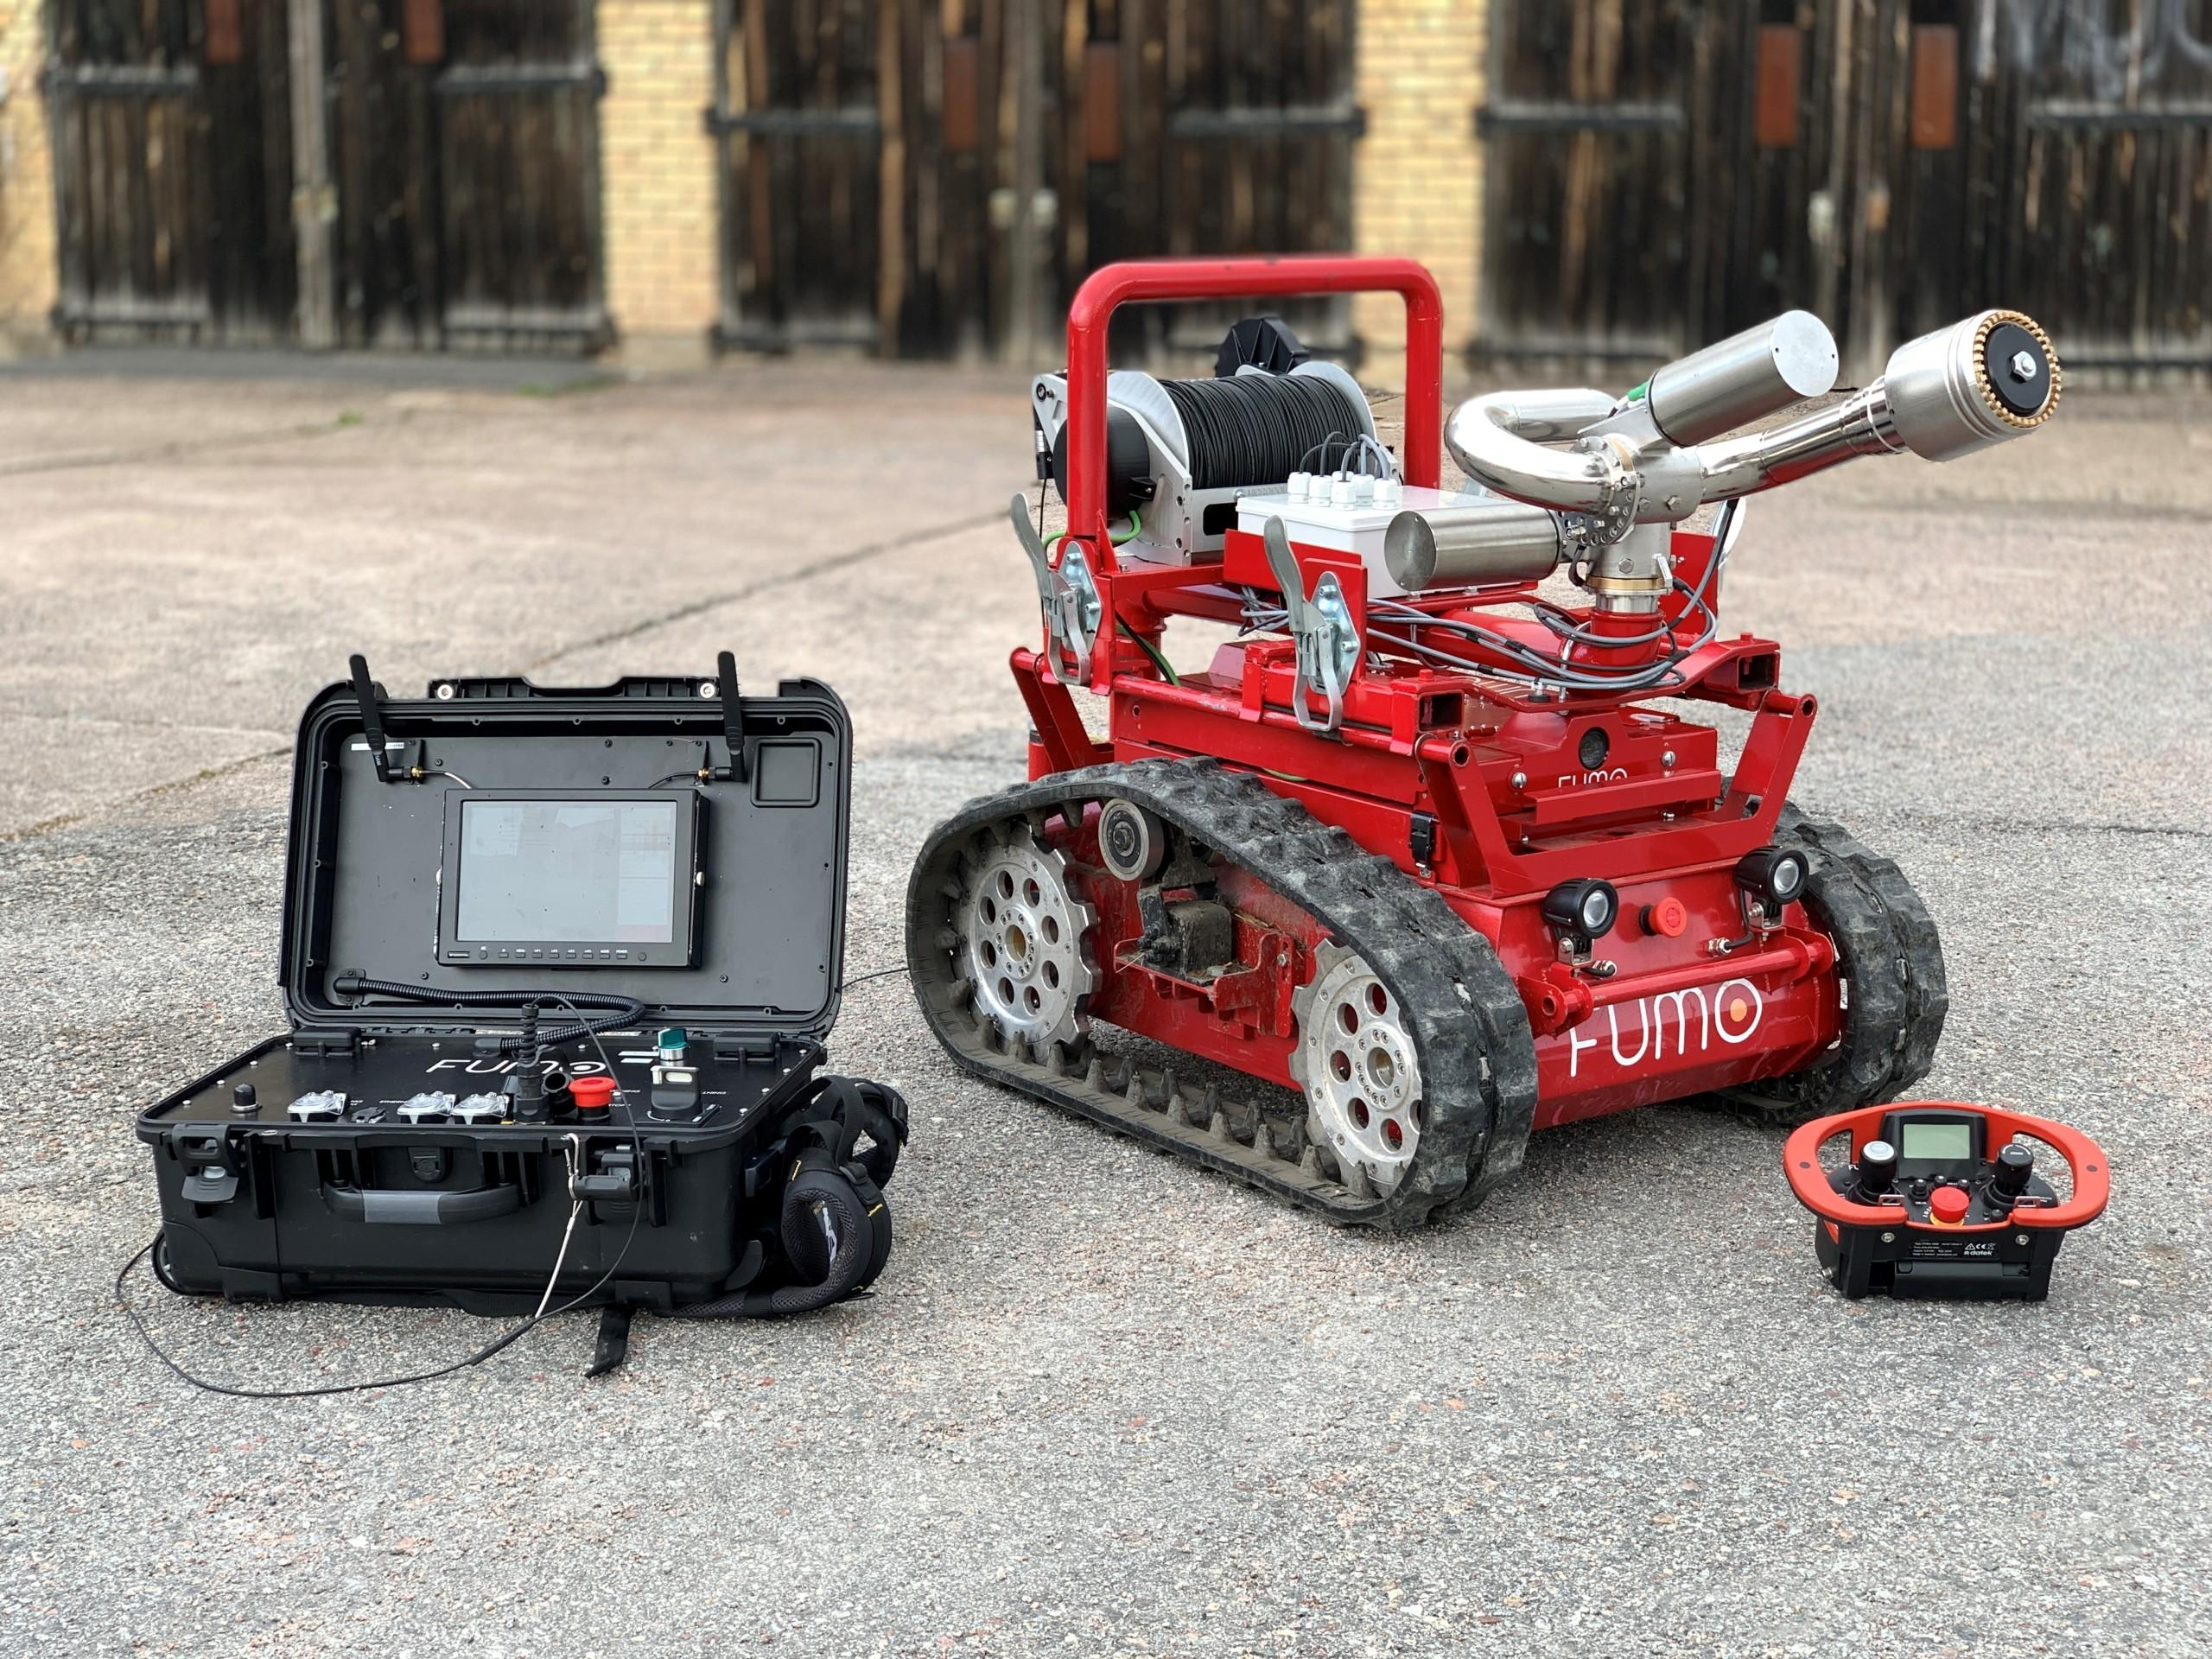 Fumo fire-fighter robot